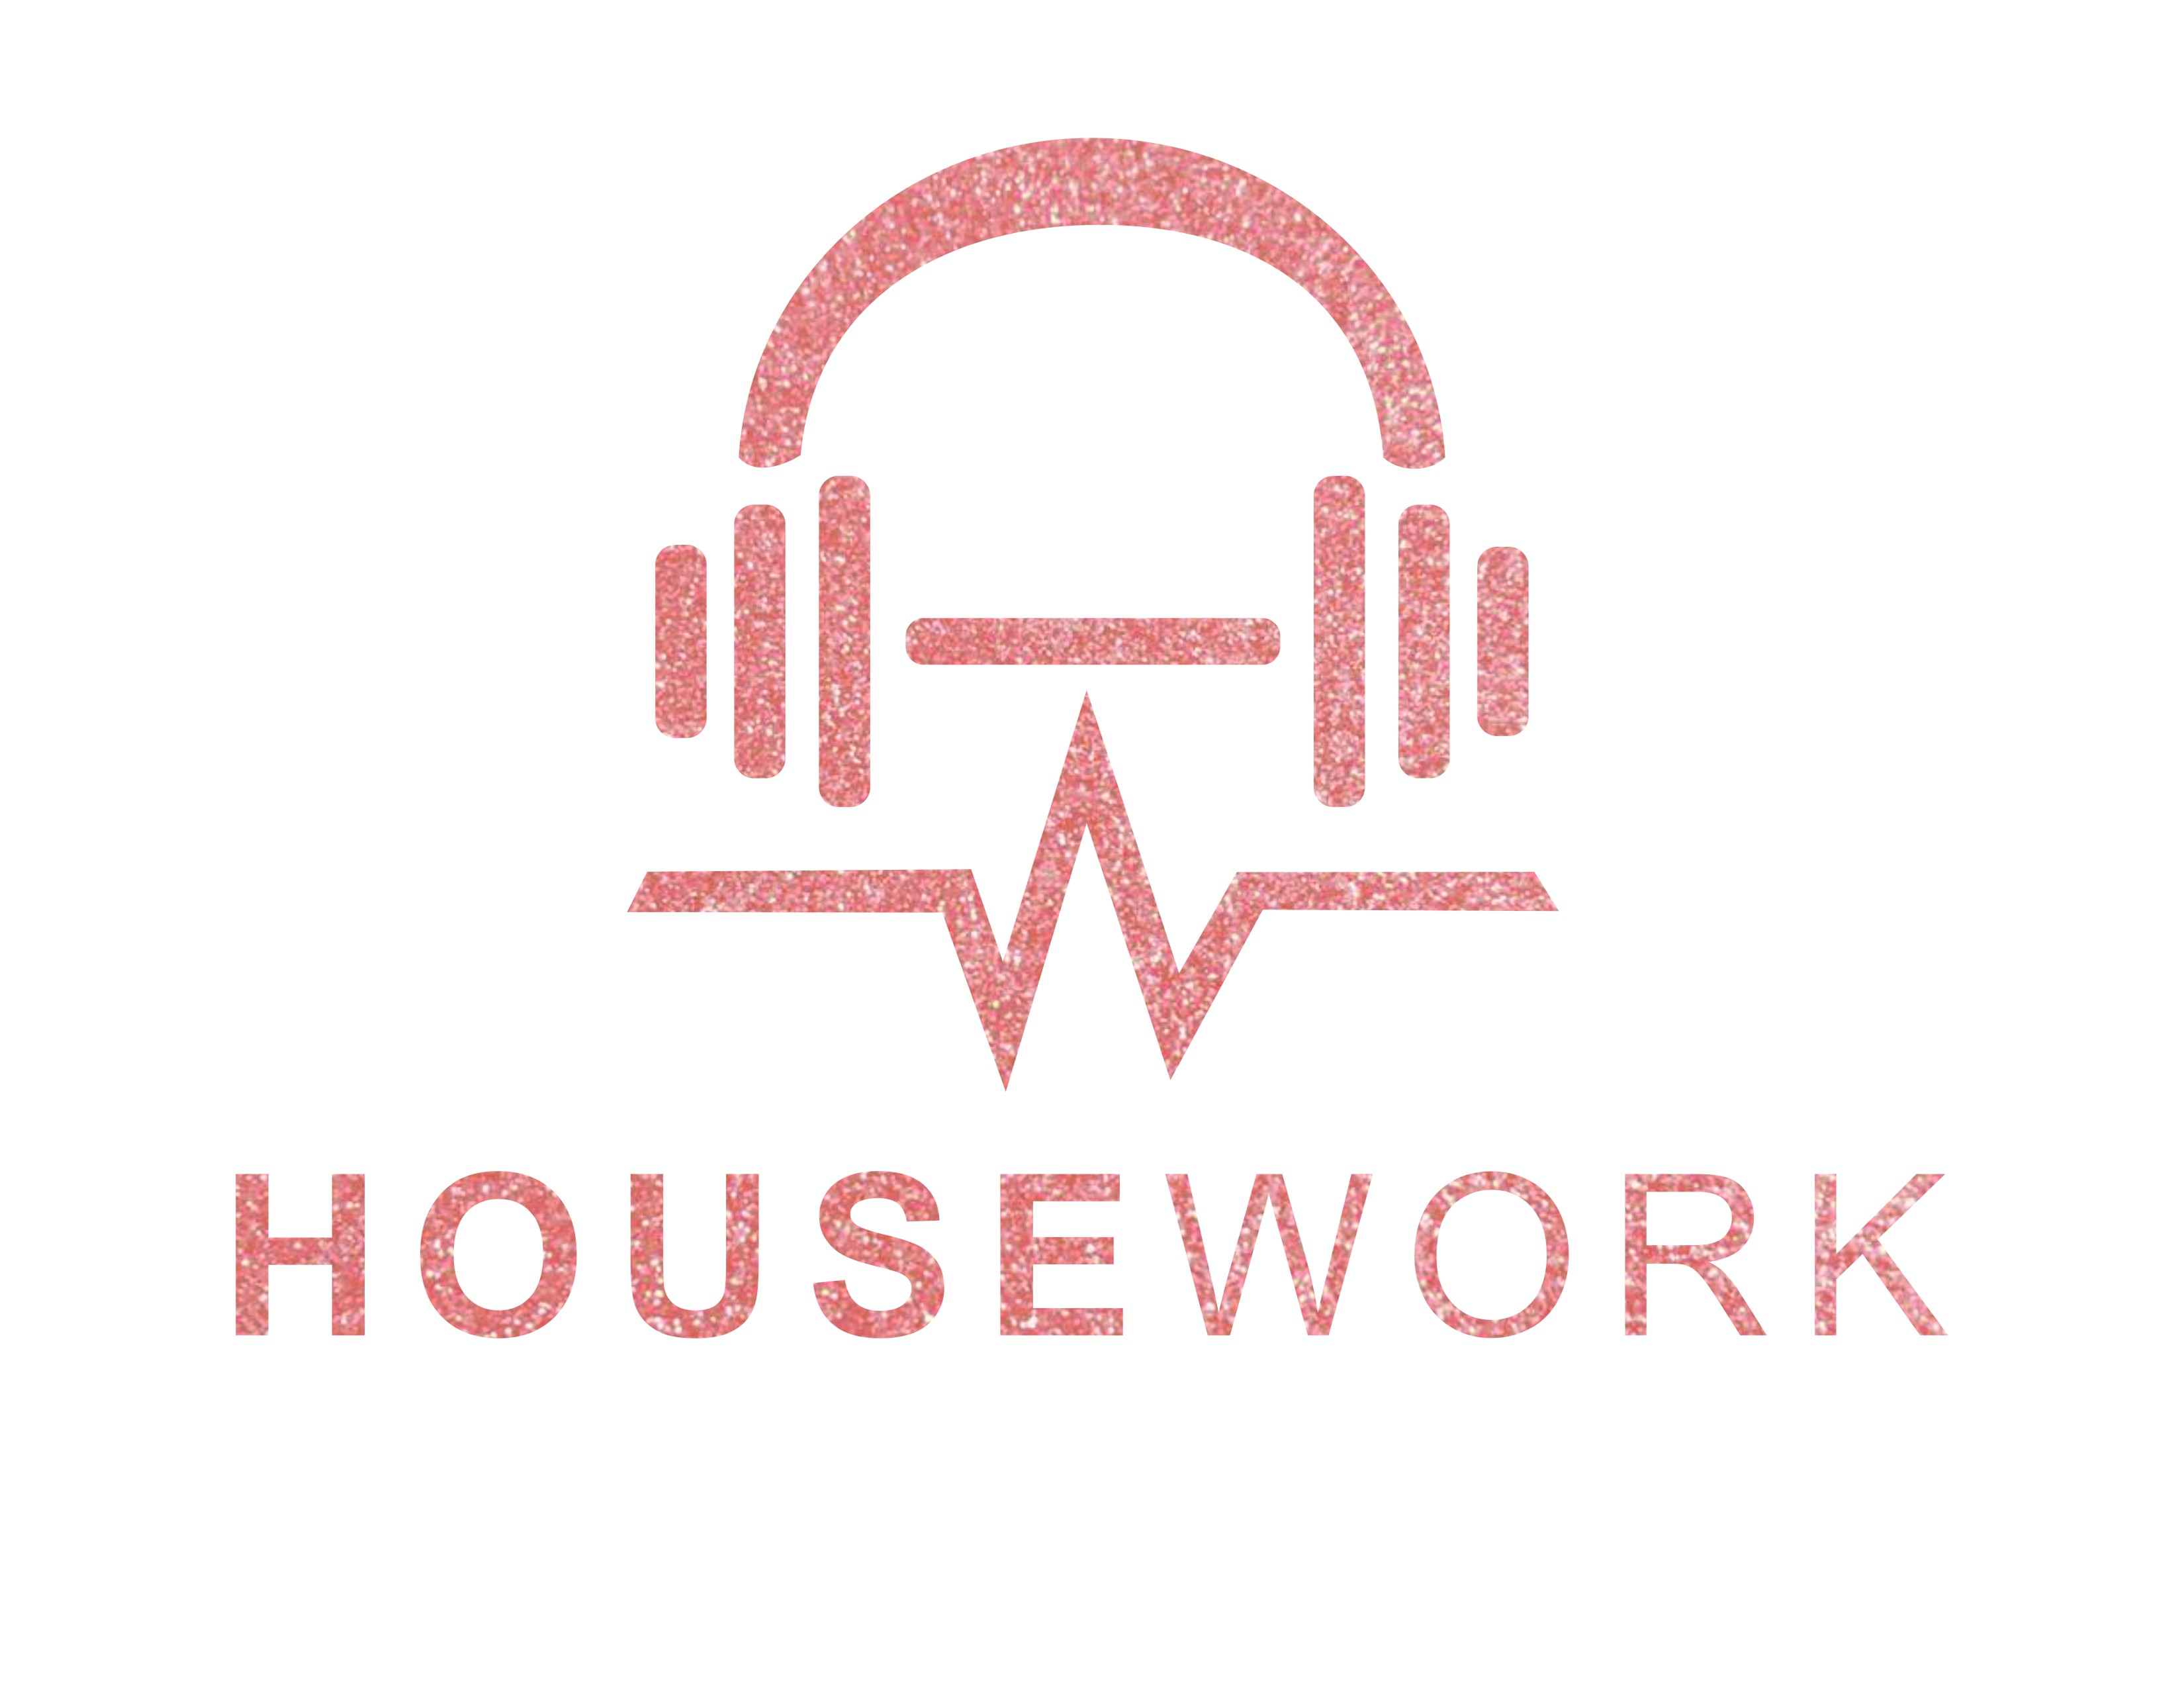 HOUSEWORK is expanding in NYC and we need a logo!